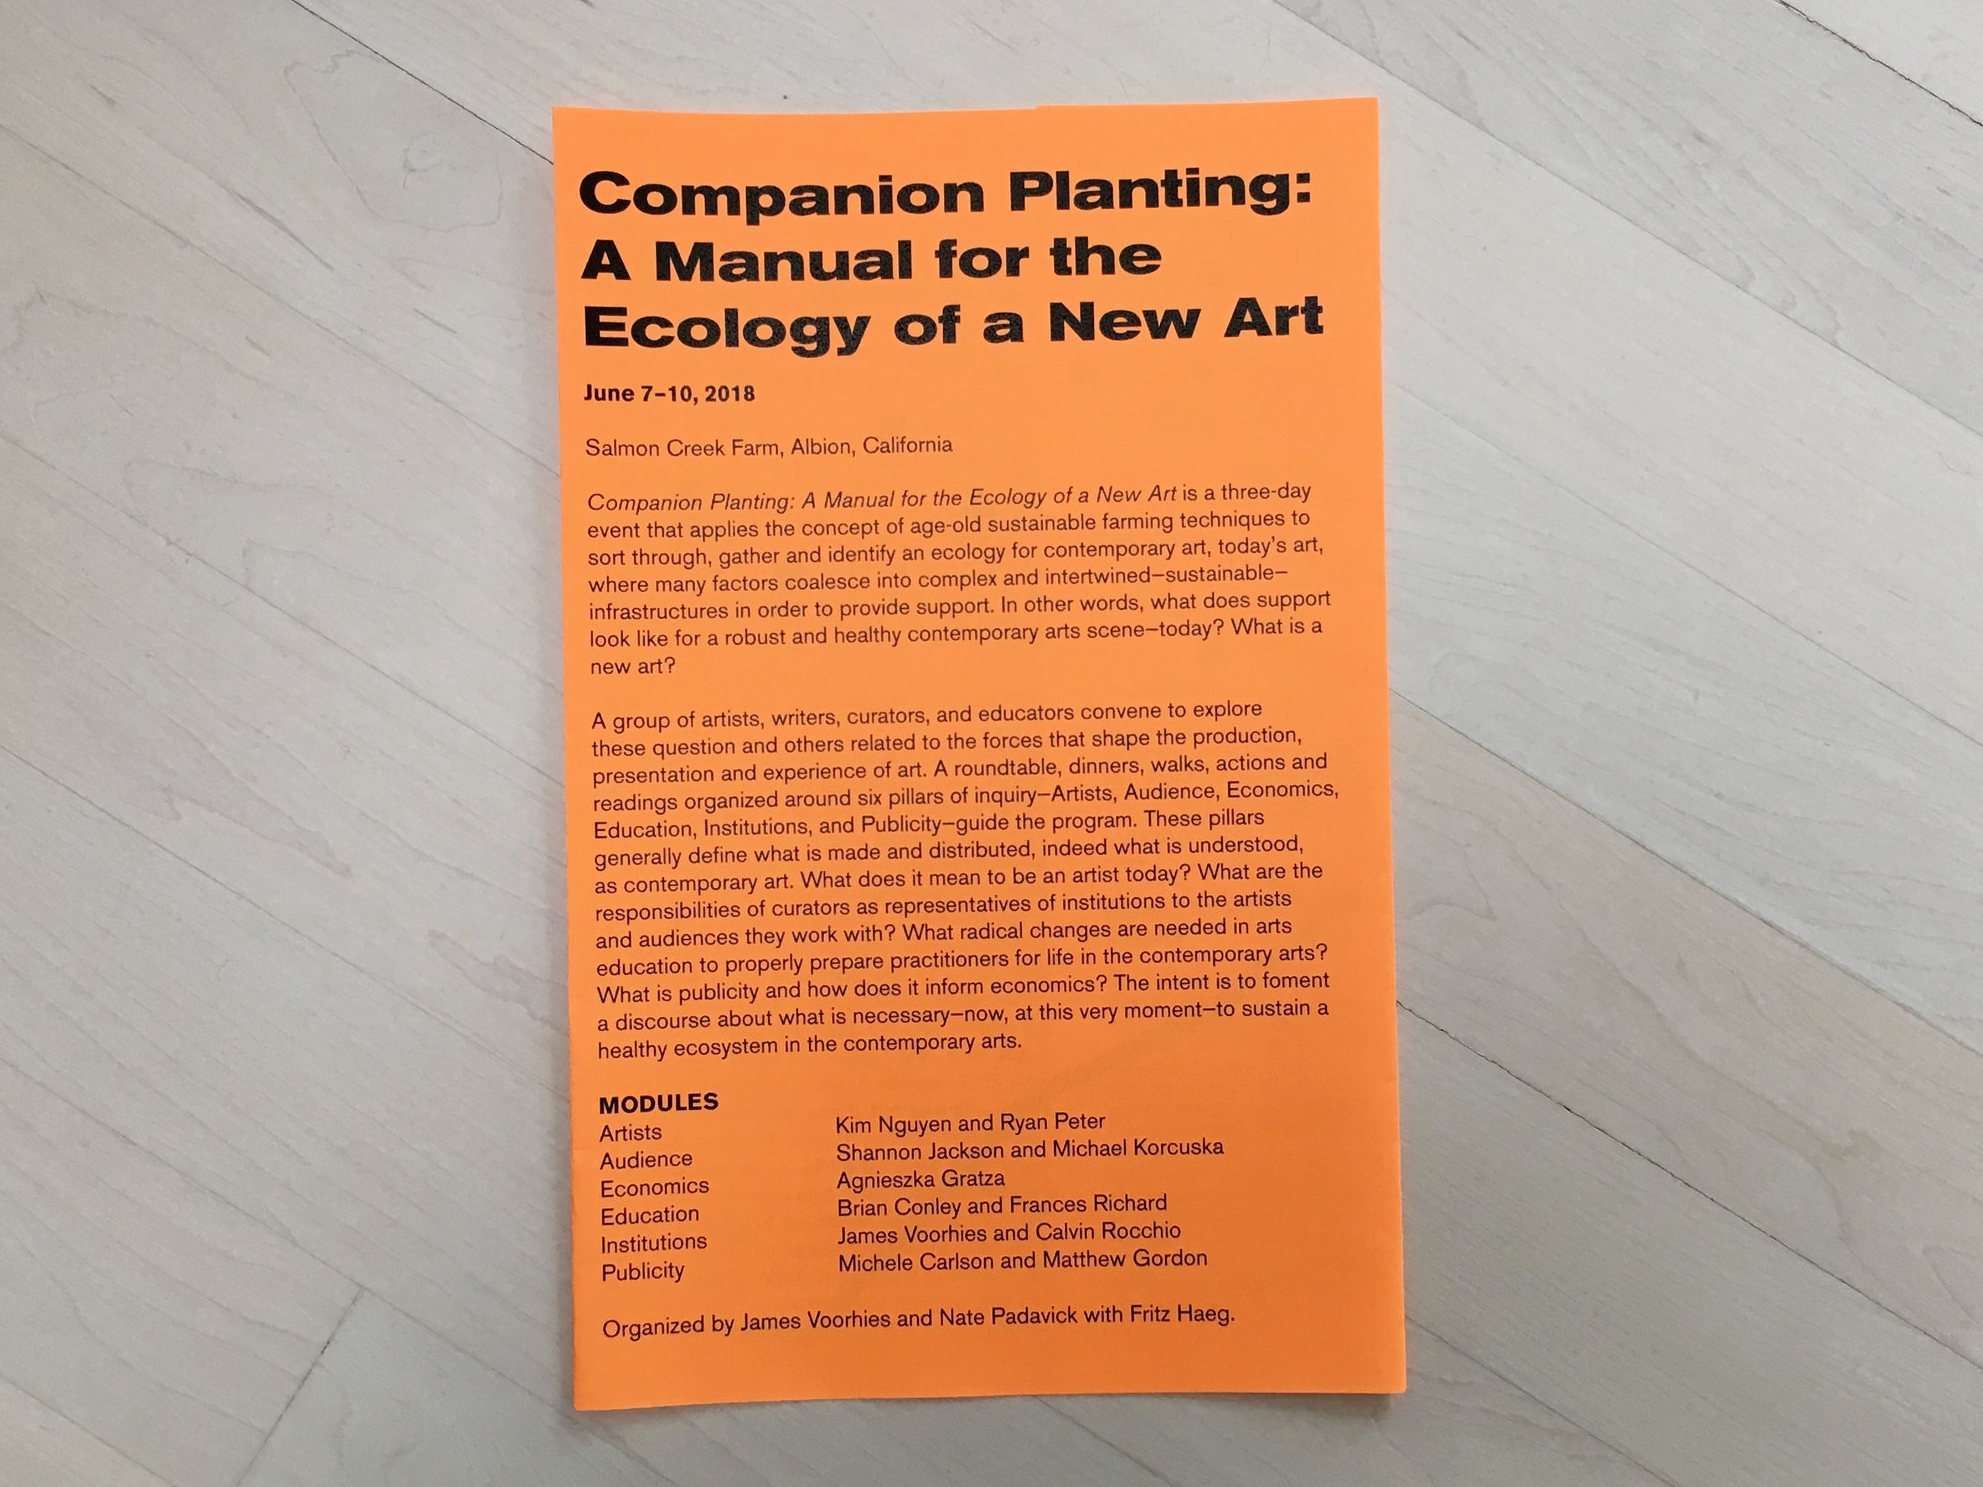 Companion Planting: A Manual for the Ecology of a New Art . Program Agenda. Salmon Creek Farm, June 7–10, 2018.